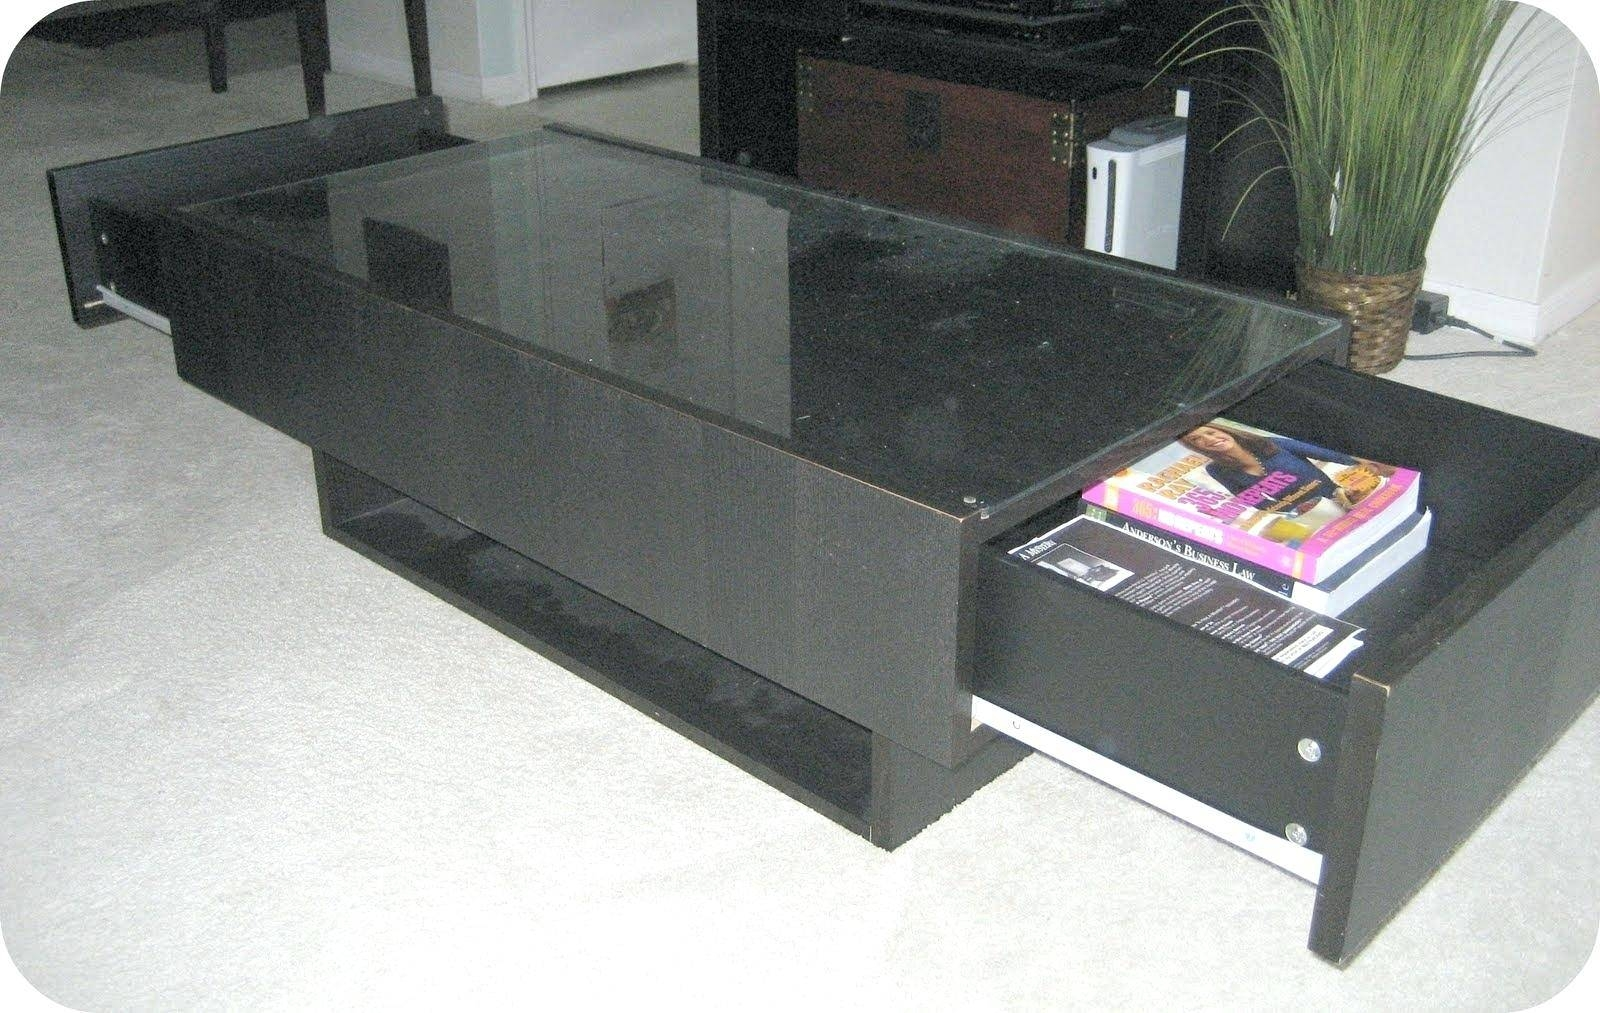 Storage Coffee Table Ikea Coffetableikea Box – Bradcarter for Coffee Tables With Box Storage (Image 25 of 30)